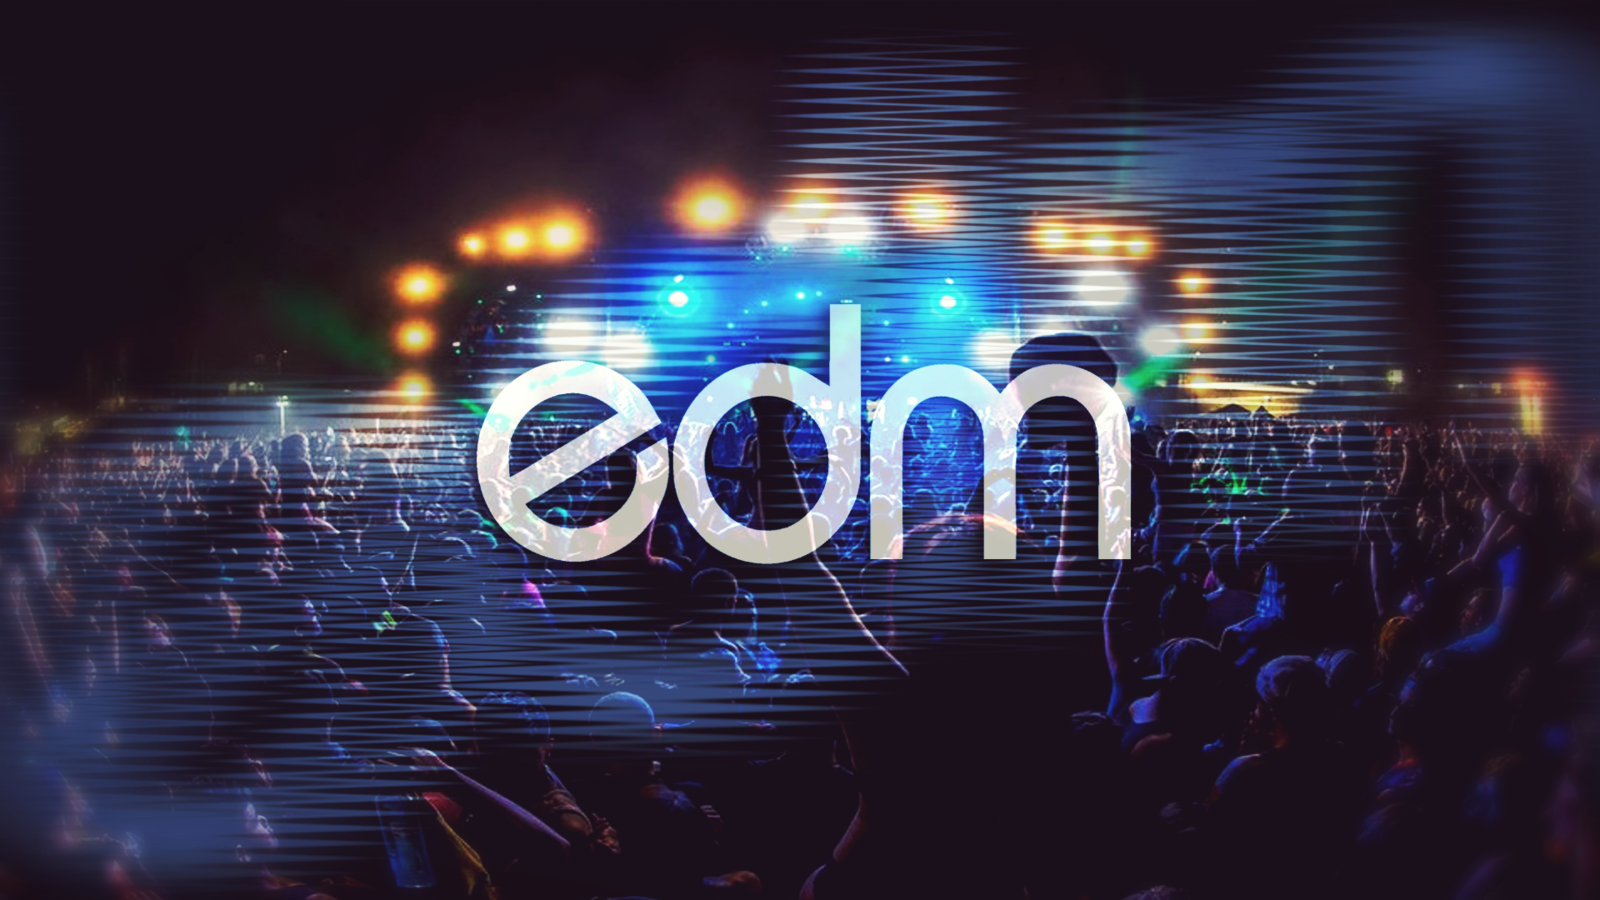 39 Free Hd Pc Edm Wallpapers On Wallpapersafari